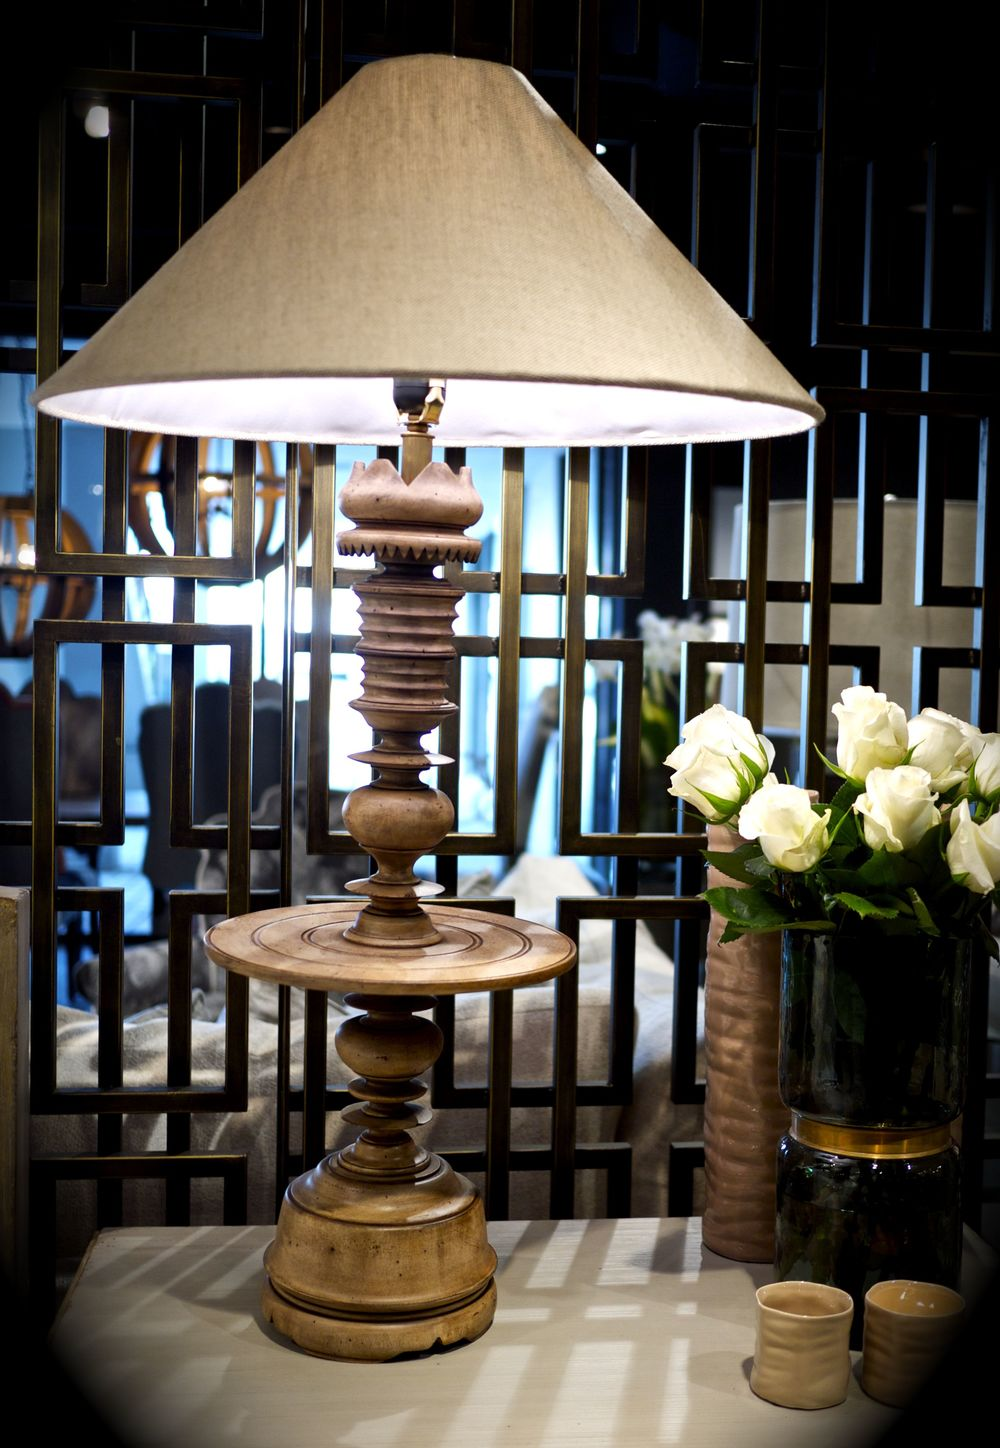 barcelona table lamp.jpg